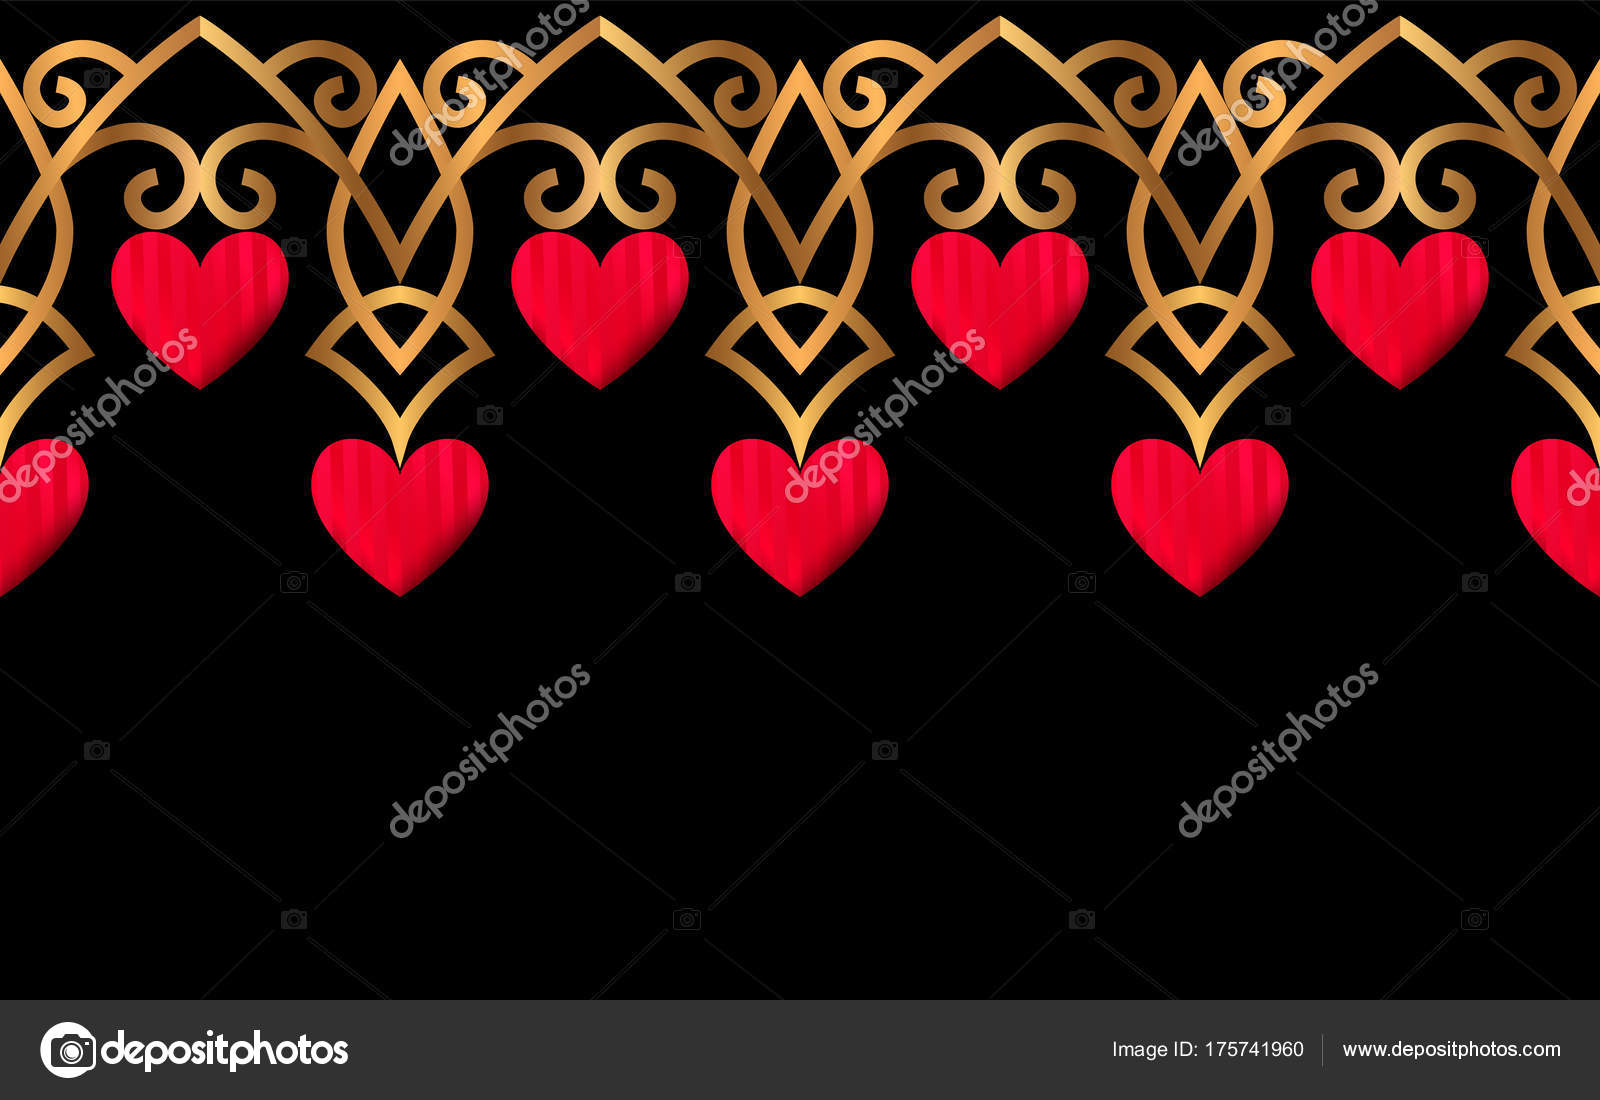 Hearts Gold Red Black